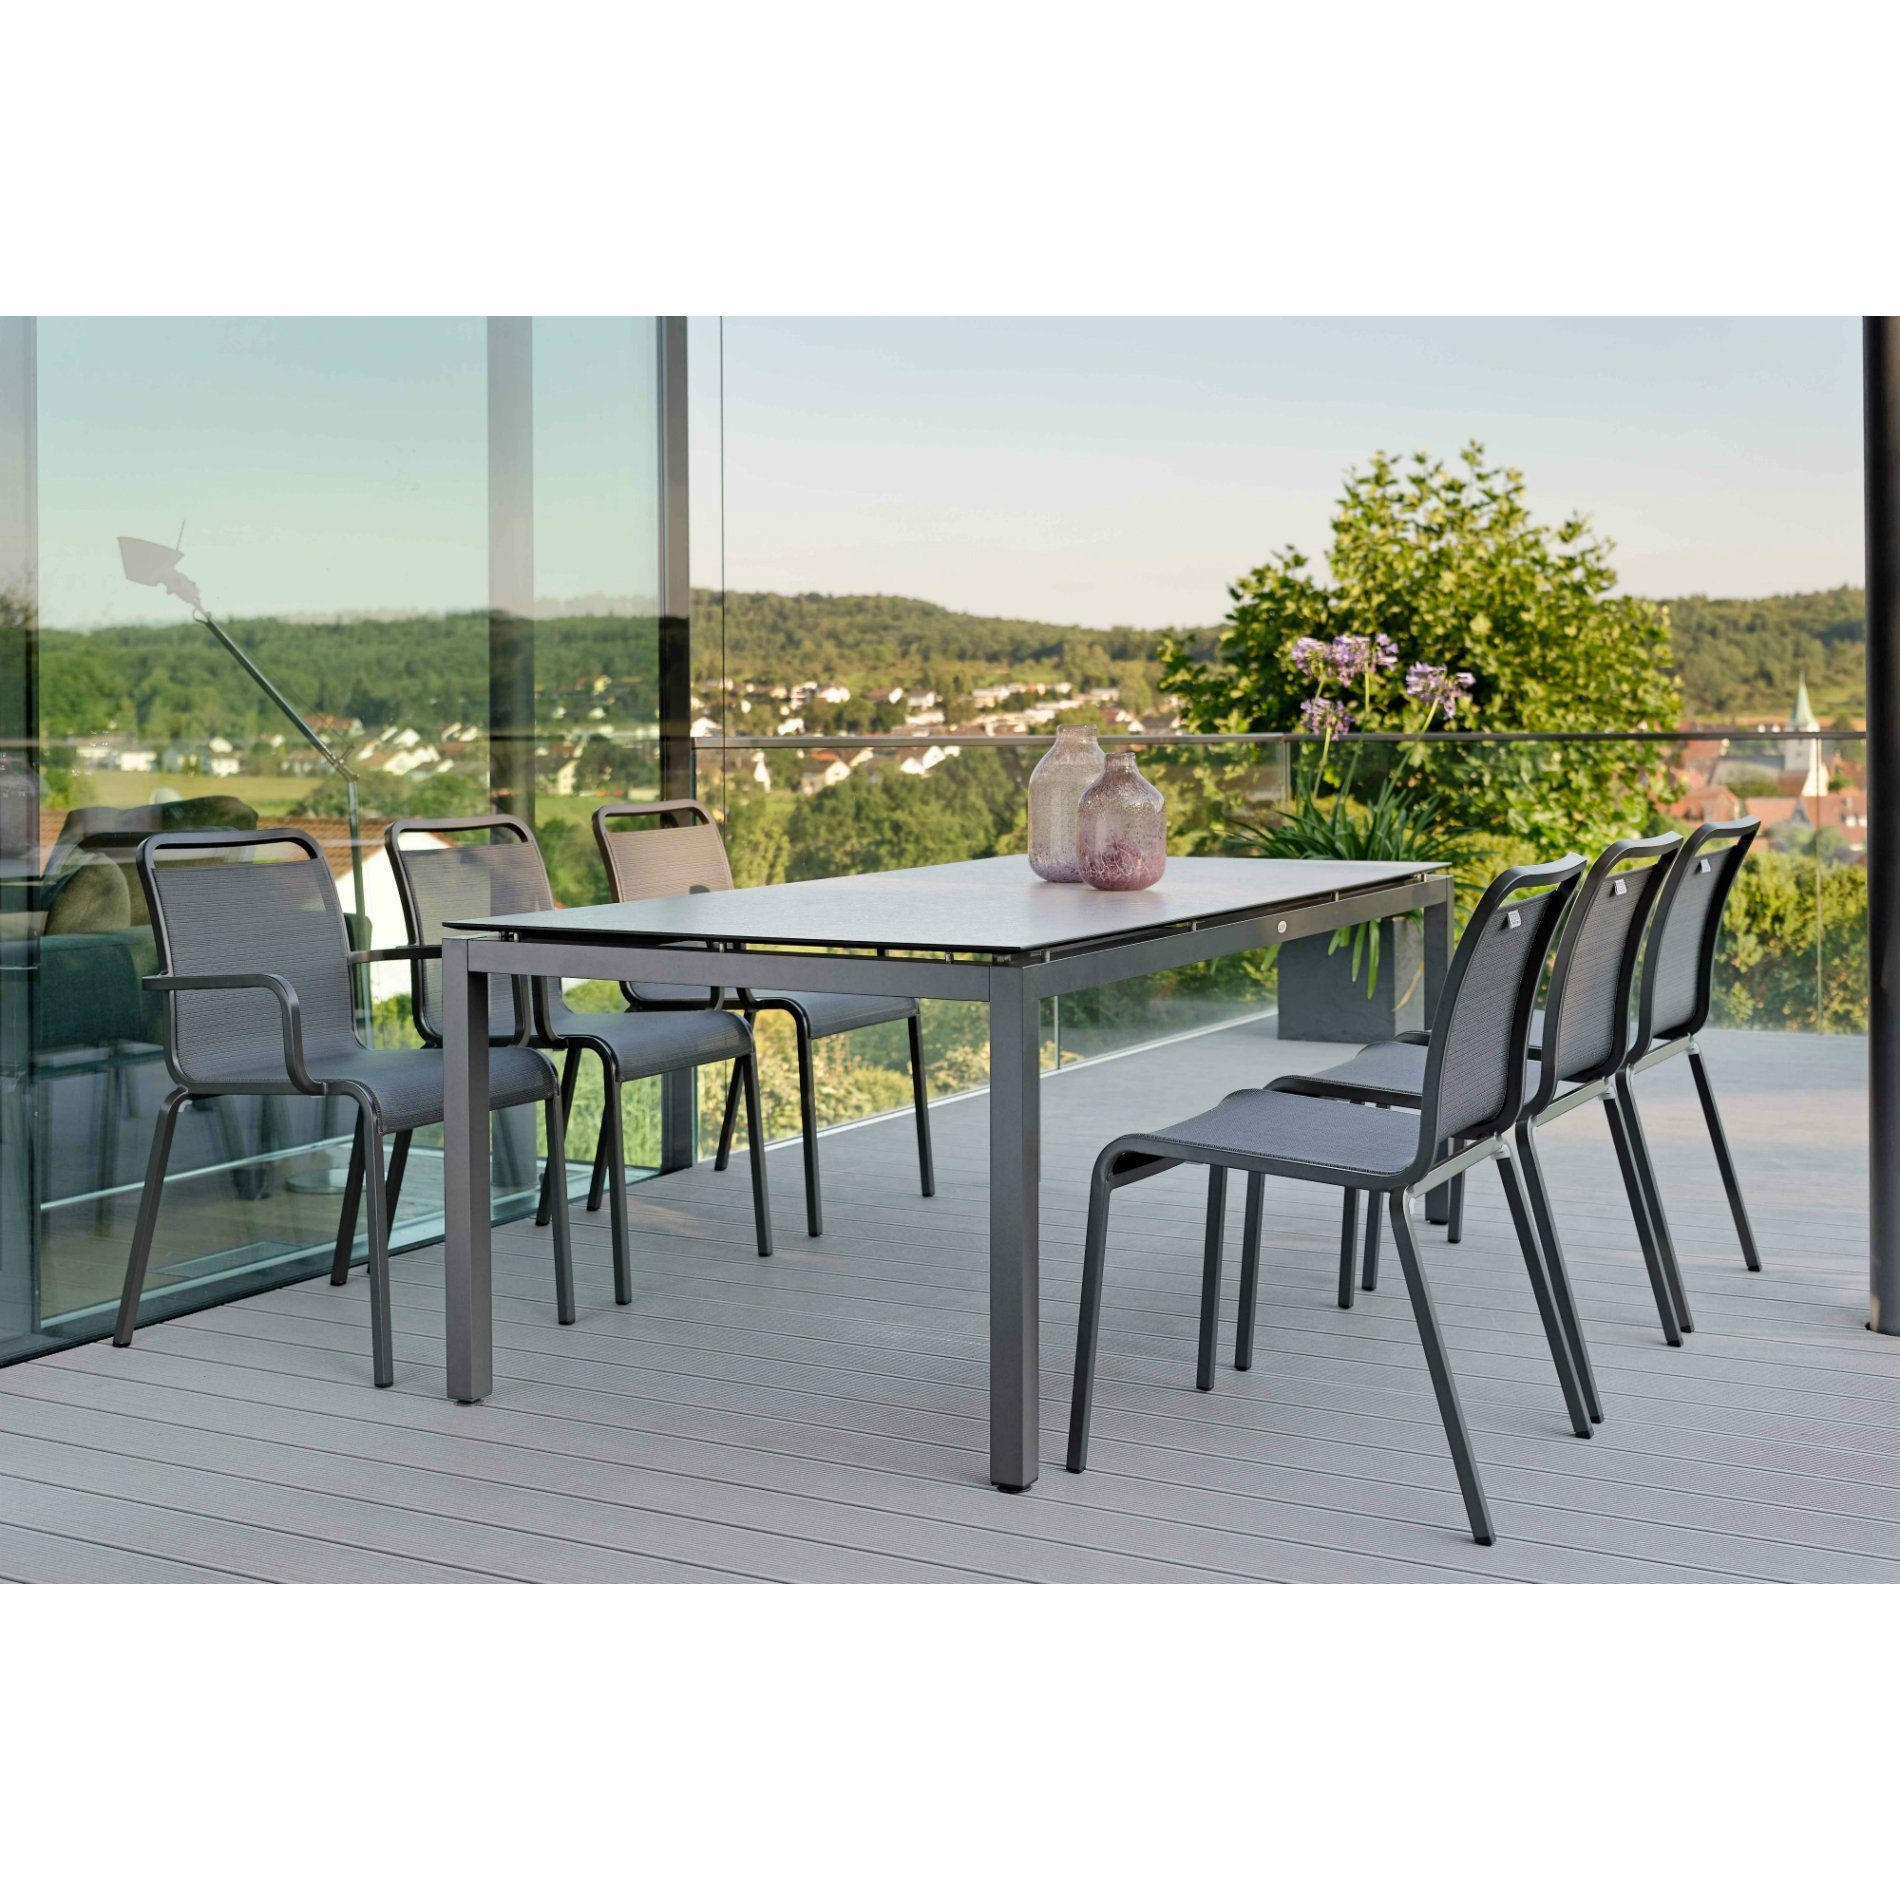 stern gartenm bel set mit stuhl oskar und tisch aluminium anthrazit hpl zement hell. Black Bedroom Furniture Sets. Home Design Ideas